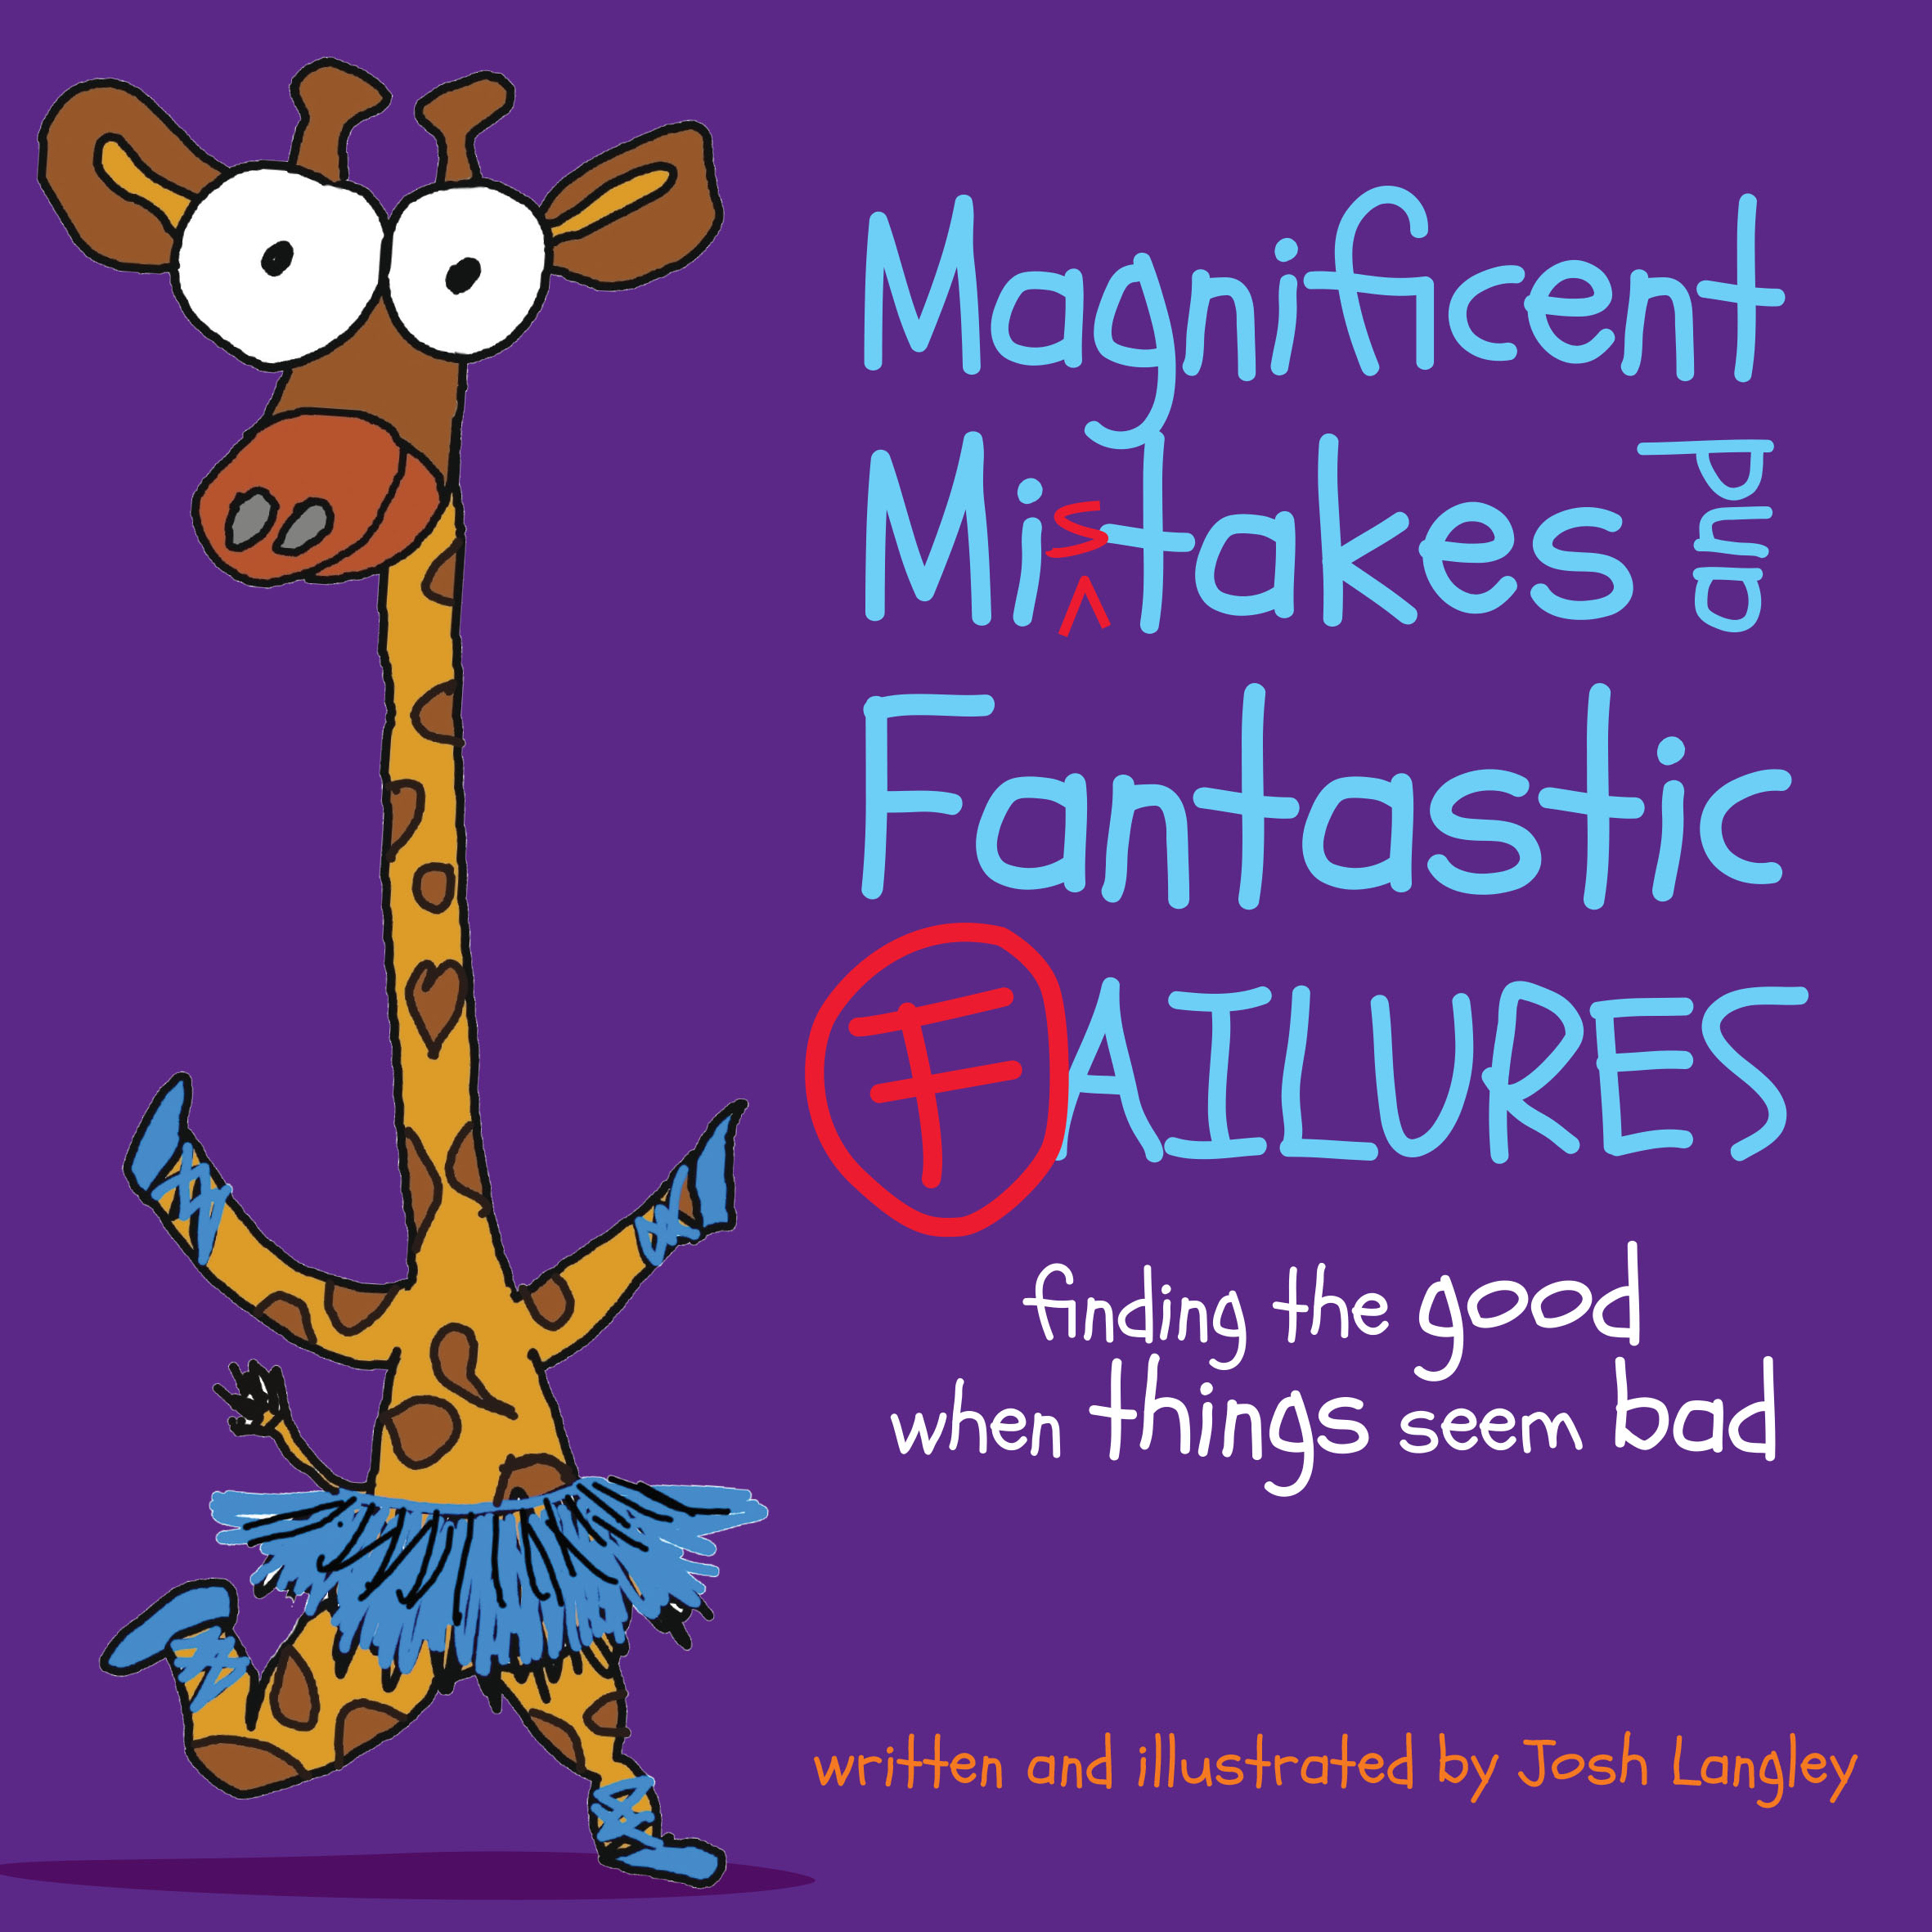 Magnificent Mistakes finding the good when things seem bad